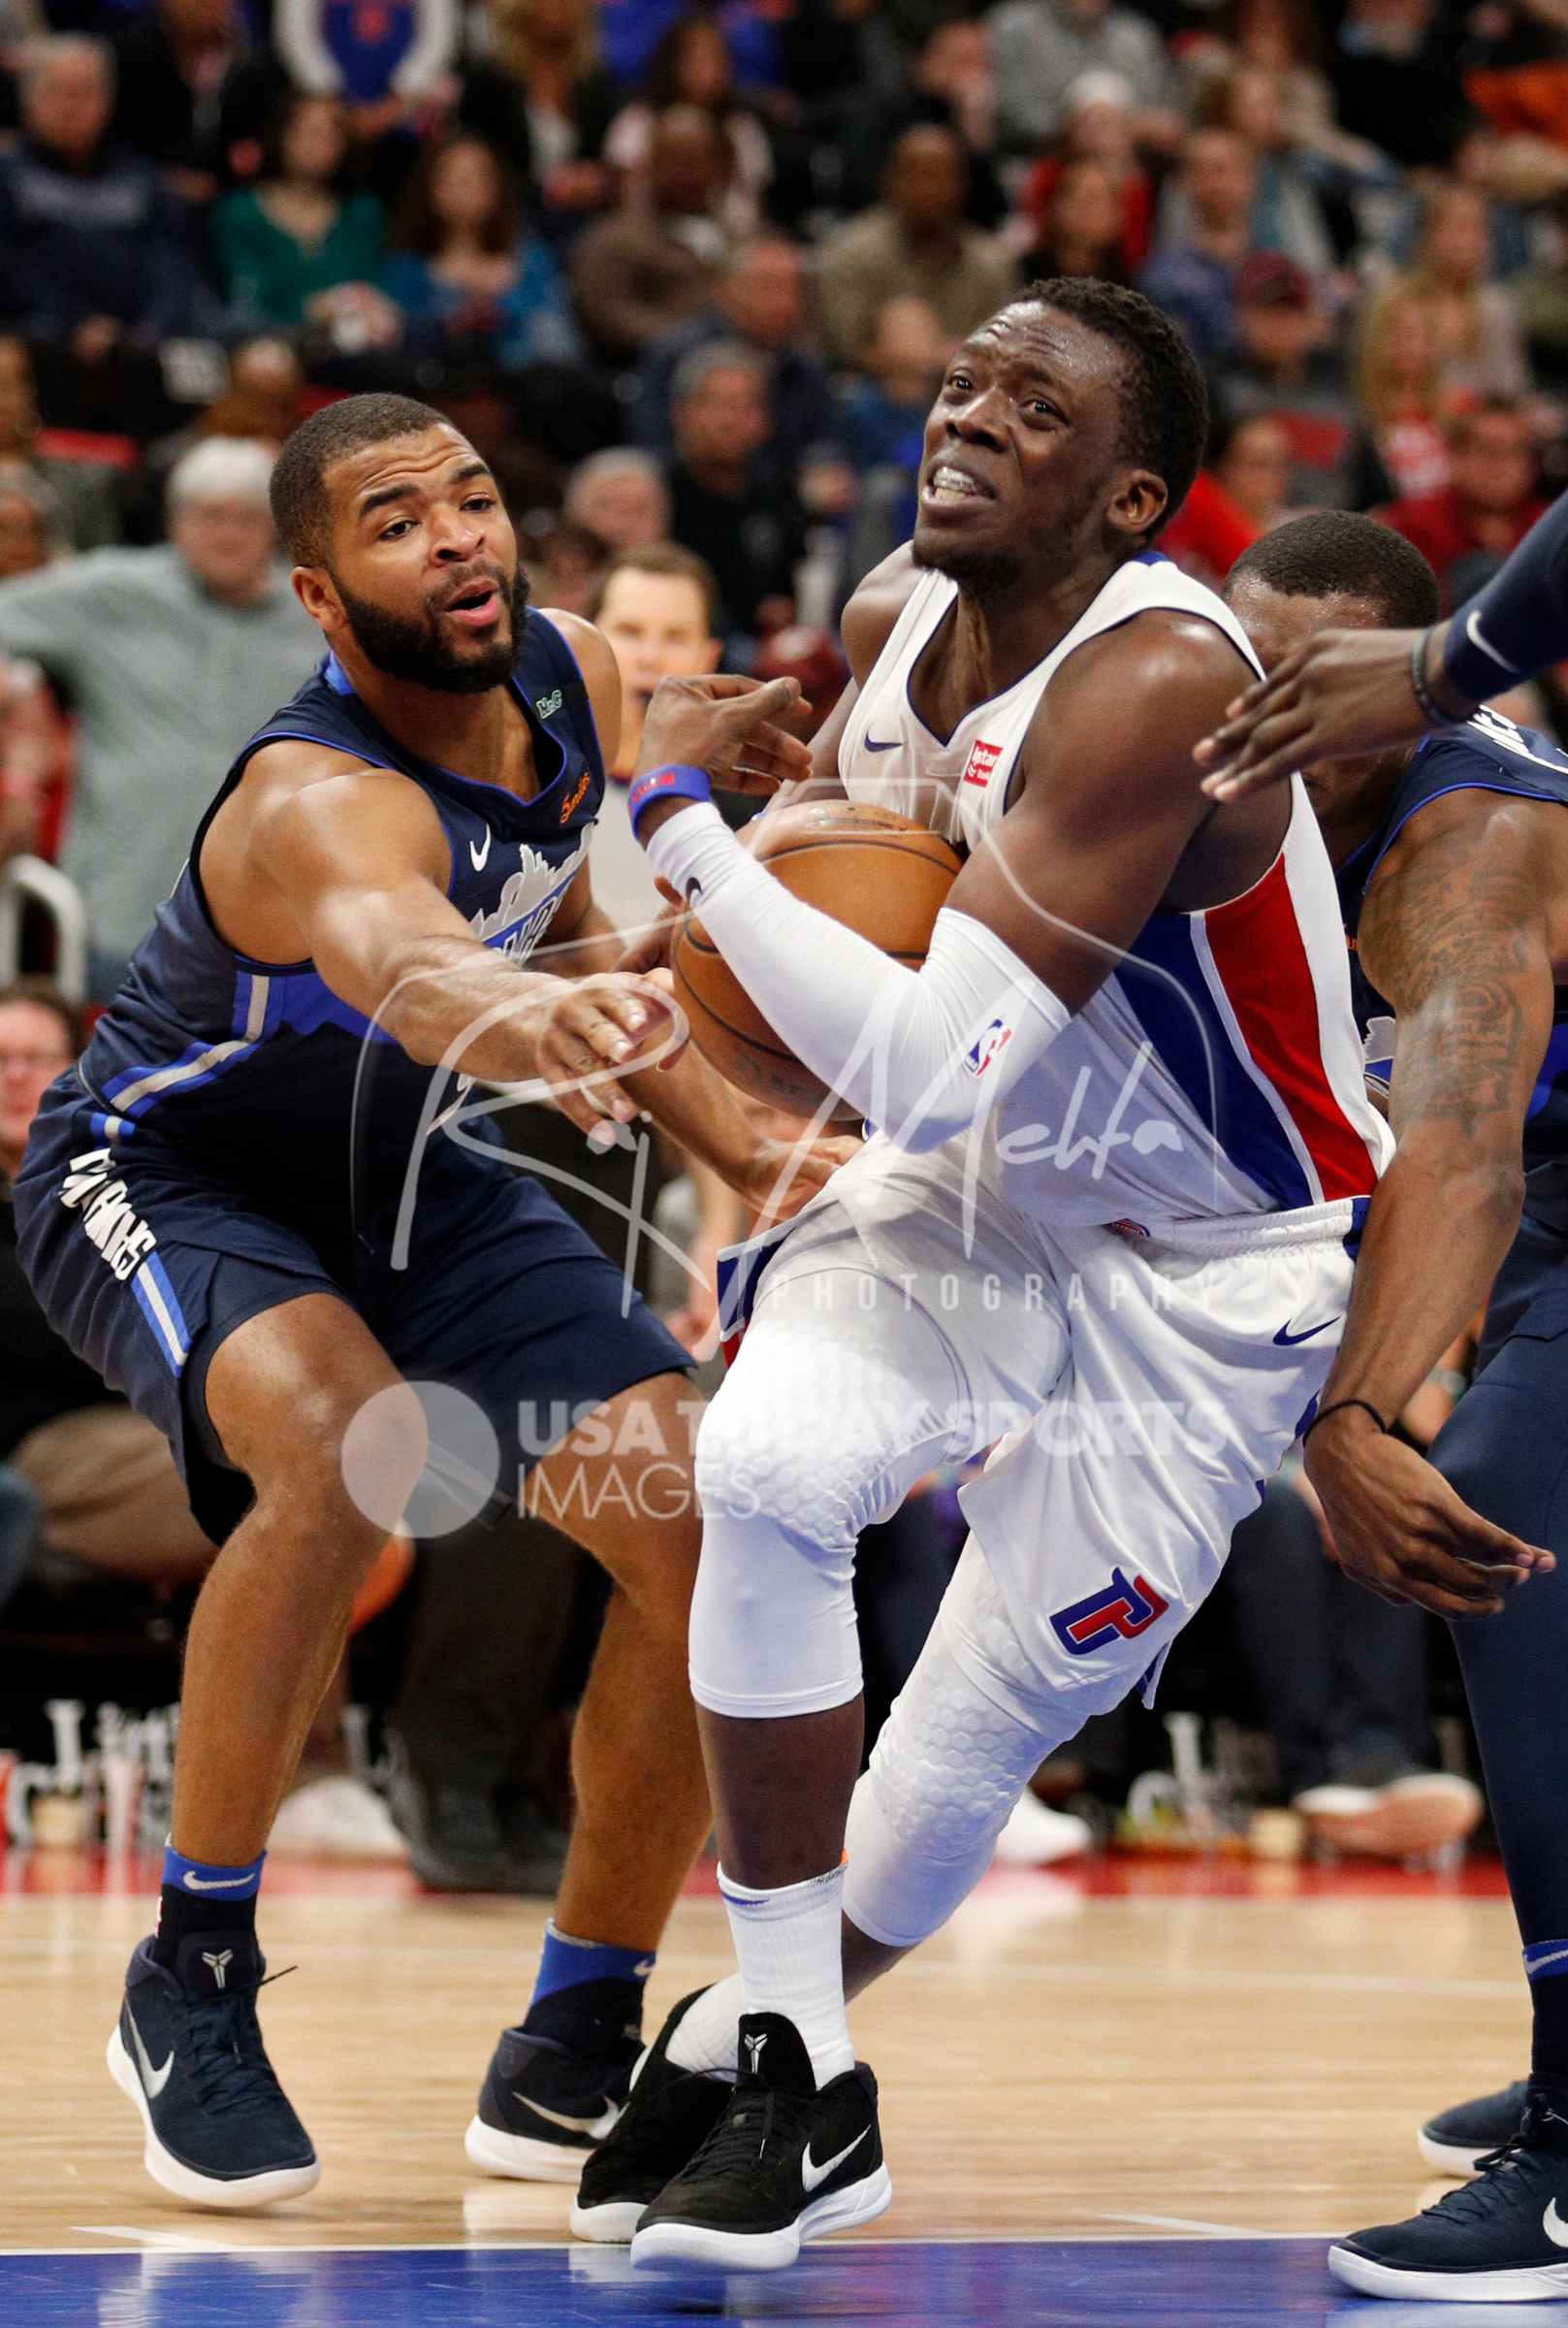 Apr 6, 2018; Detroit, MI, USA; Detroit Pistons guard Reggie Jackson (1) gets defended by Dallas Mavericks guard Aaron Harrison (9) during the fourth quarter at Little Caesars Arena. Mandatory Credit: Raj Mehta-USA TODAY Sports